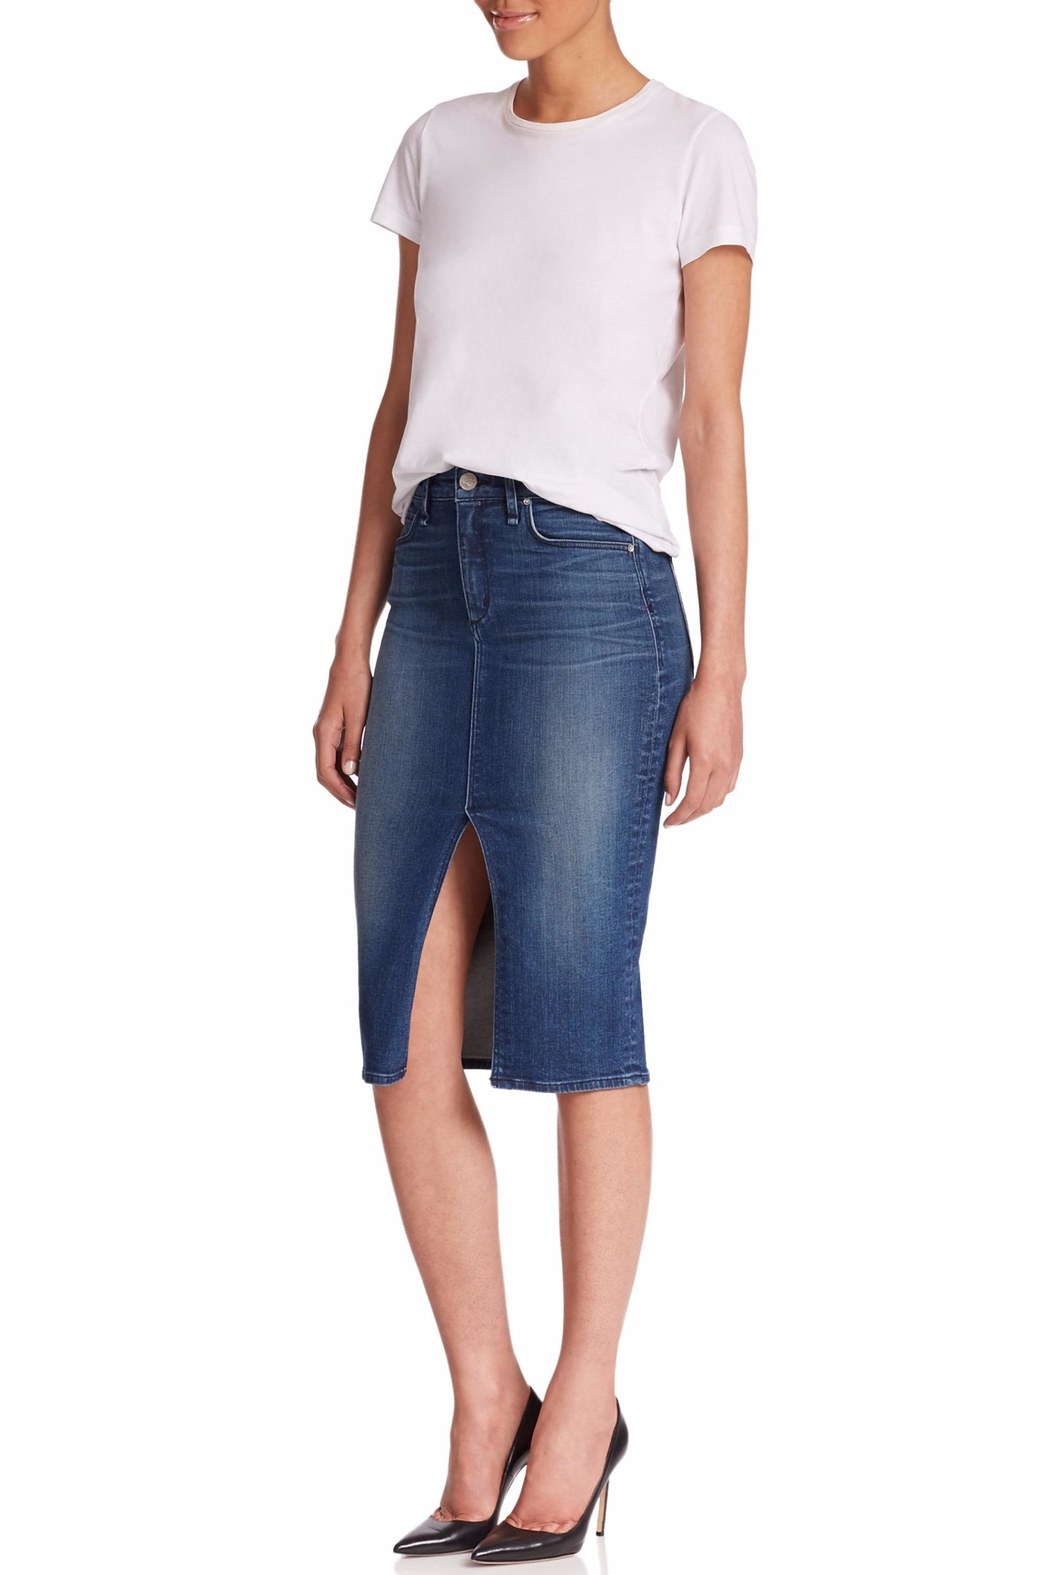 MCGUIRE DENIM Marino Denim Skirt - Main Image